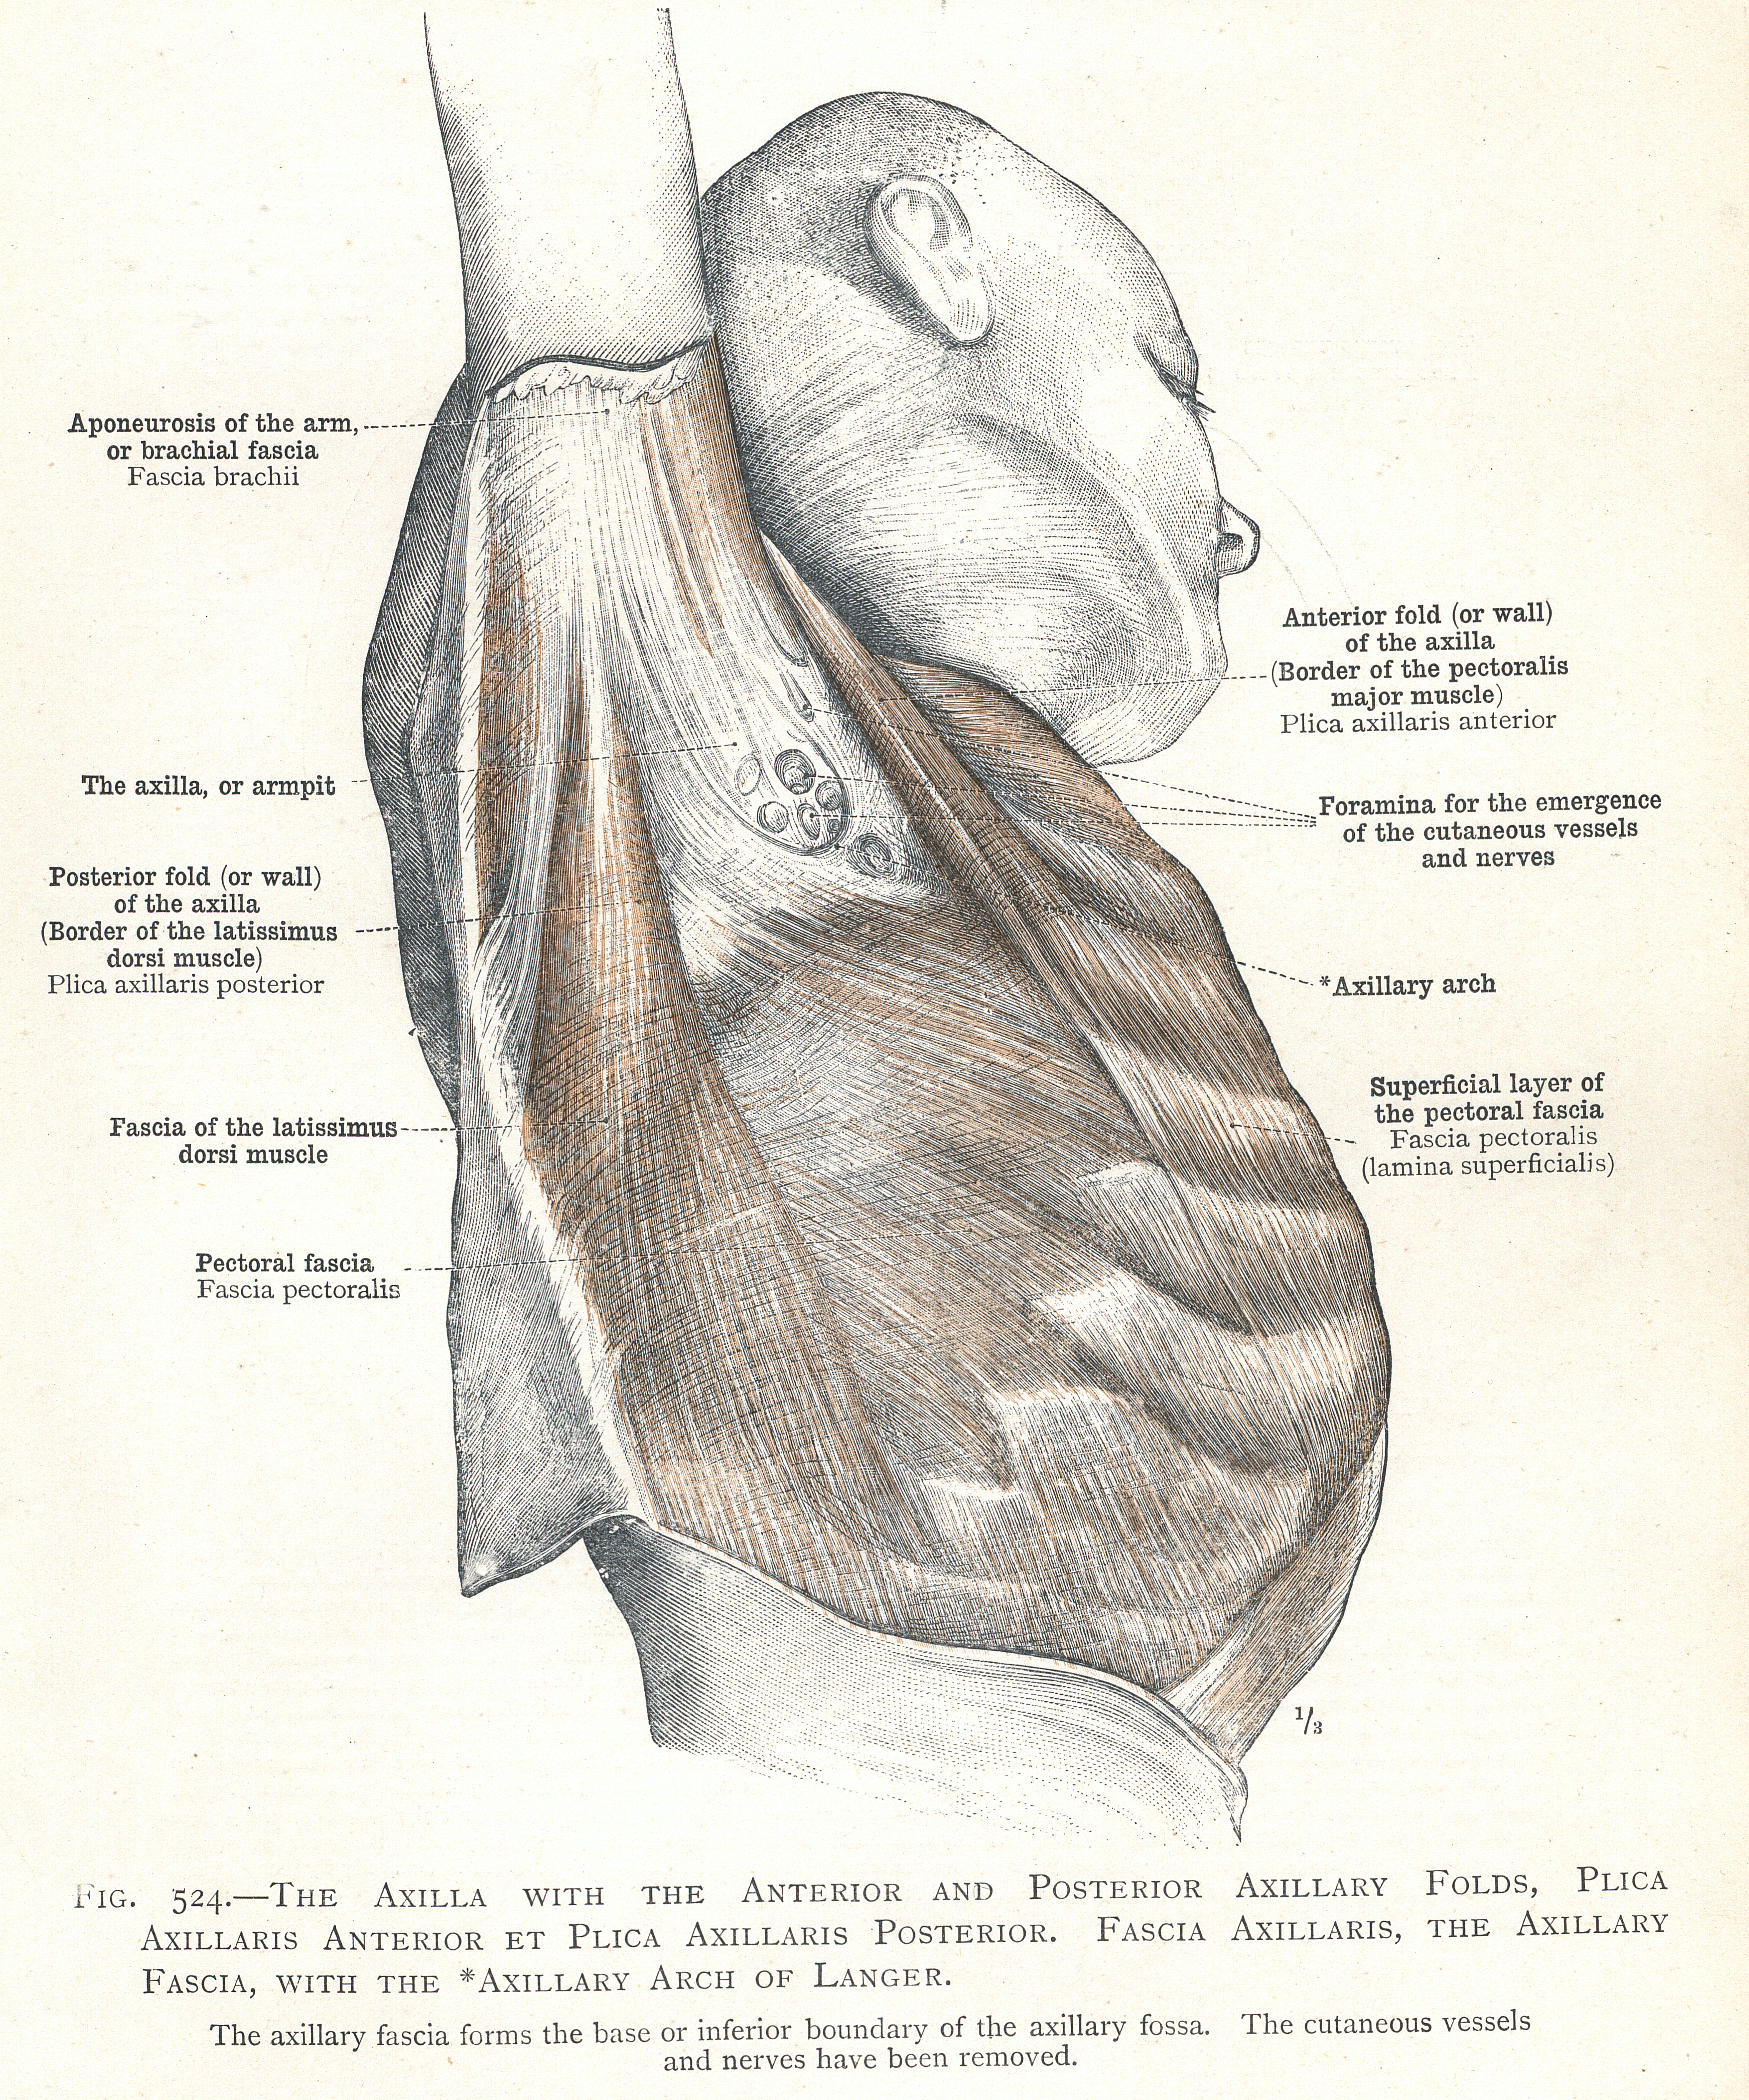 524. The axilla with the anterior and posterior axillary folds ...